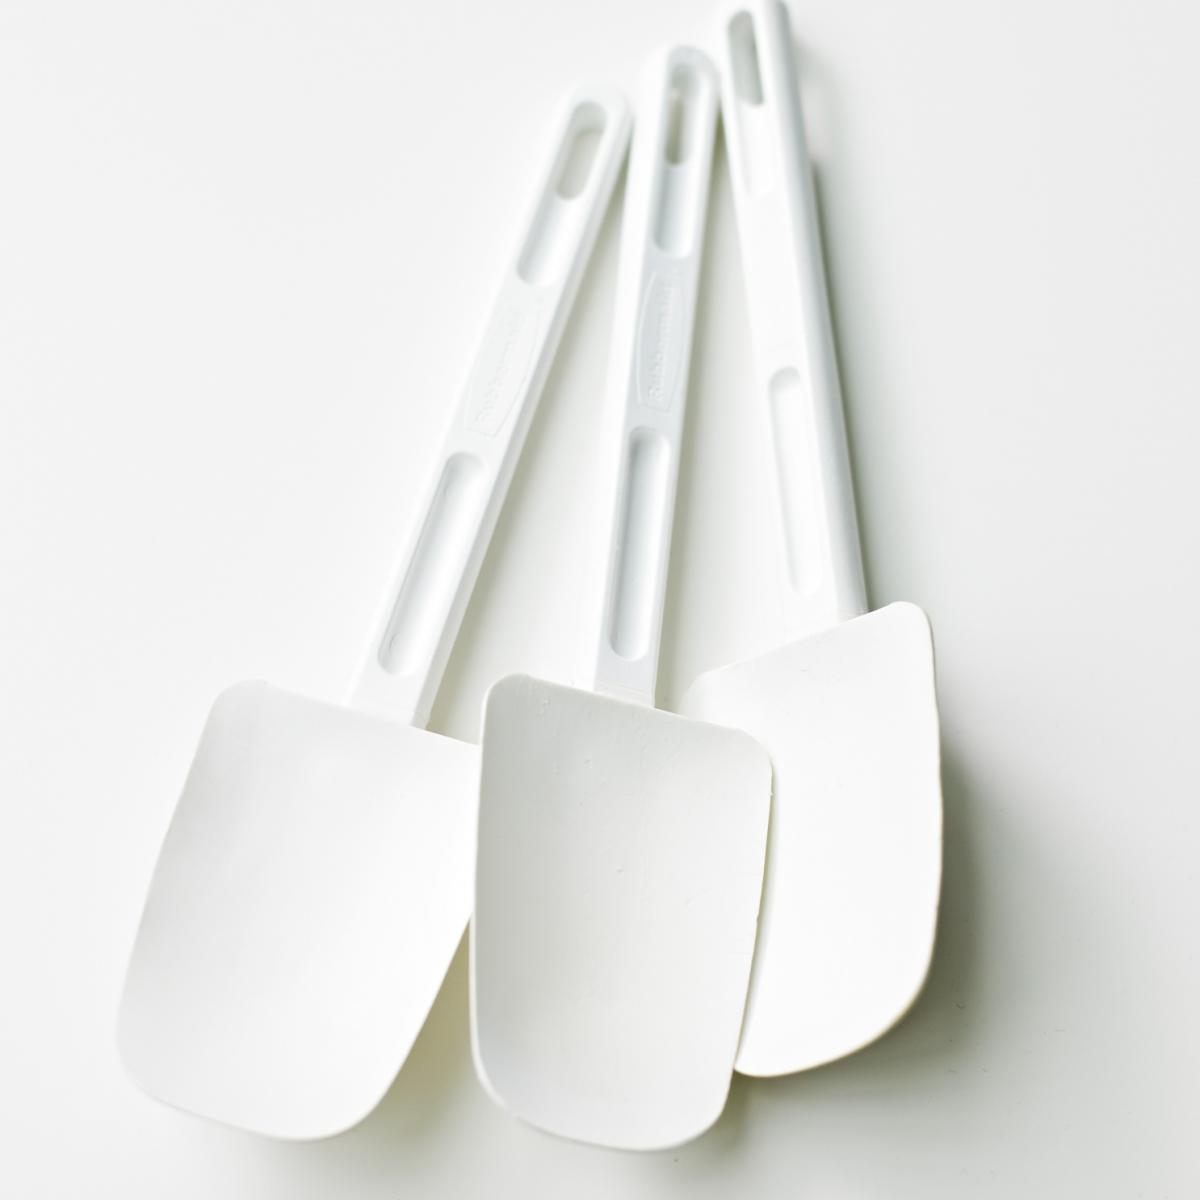 Equipment spatula